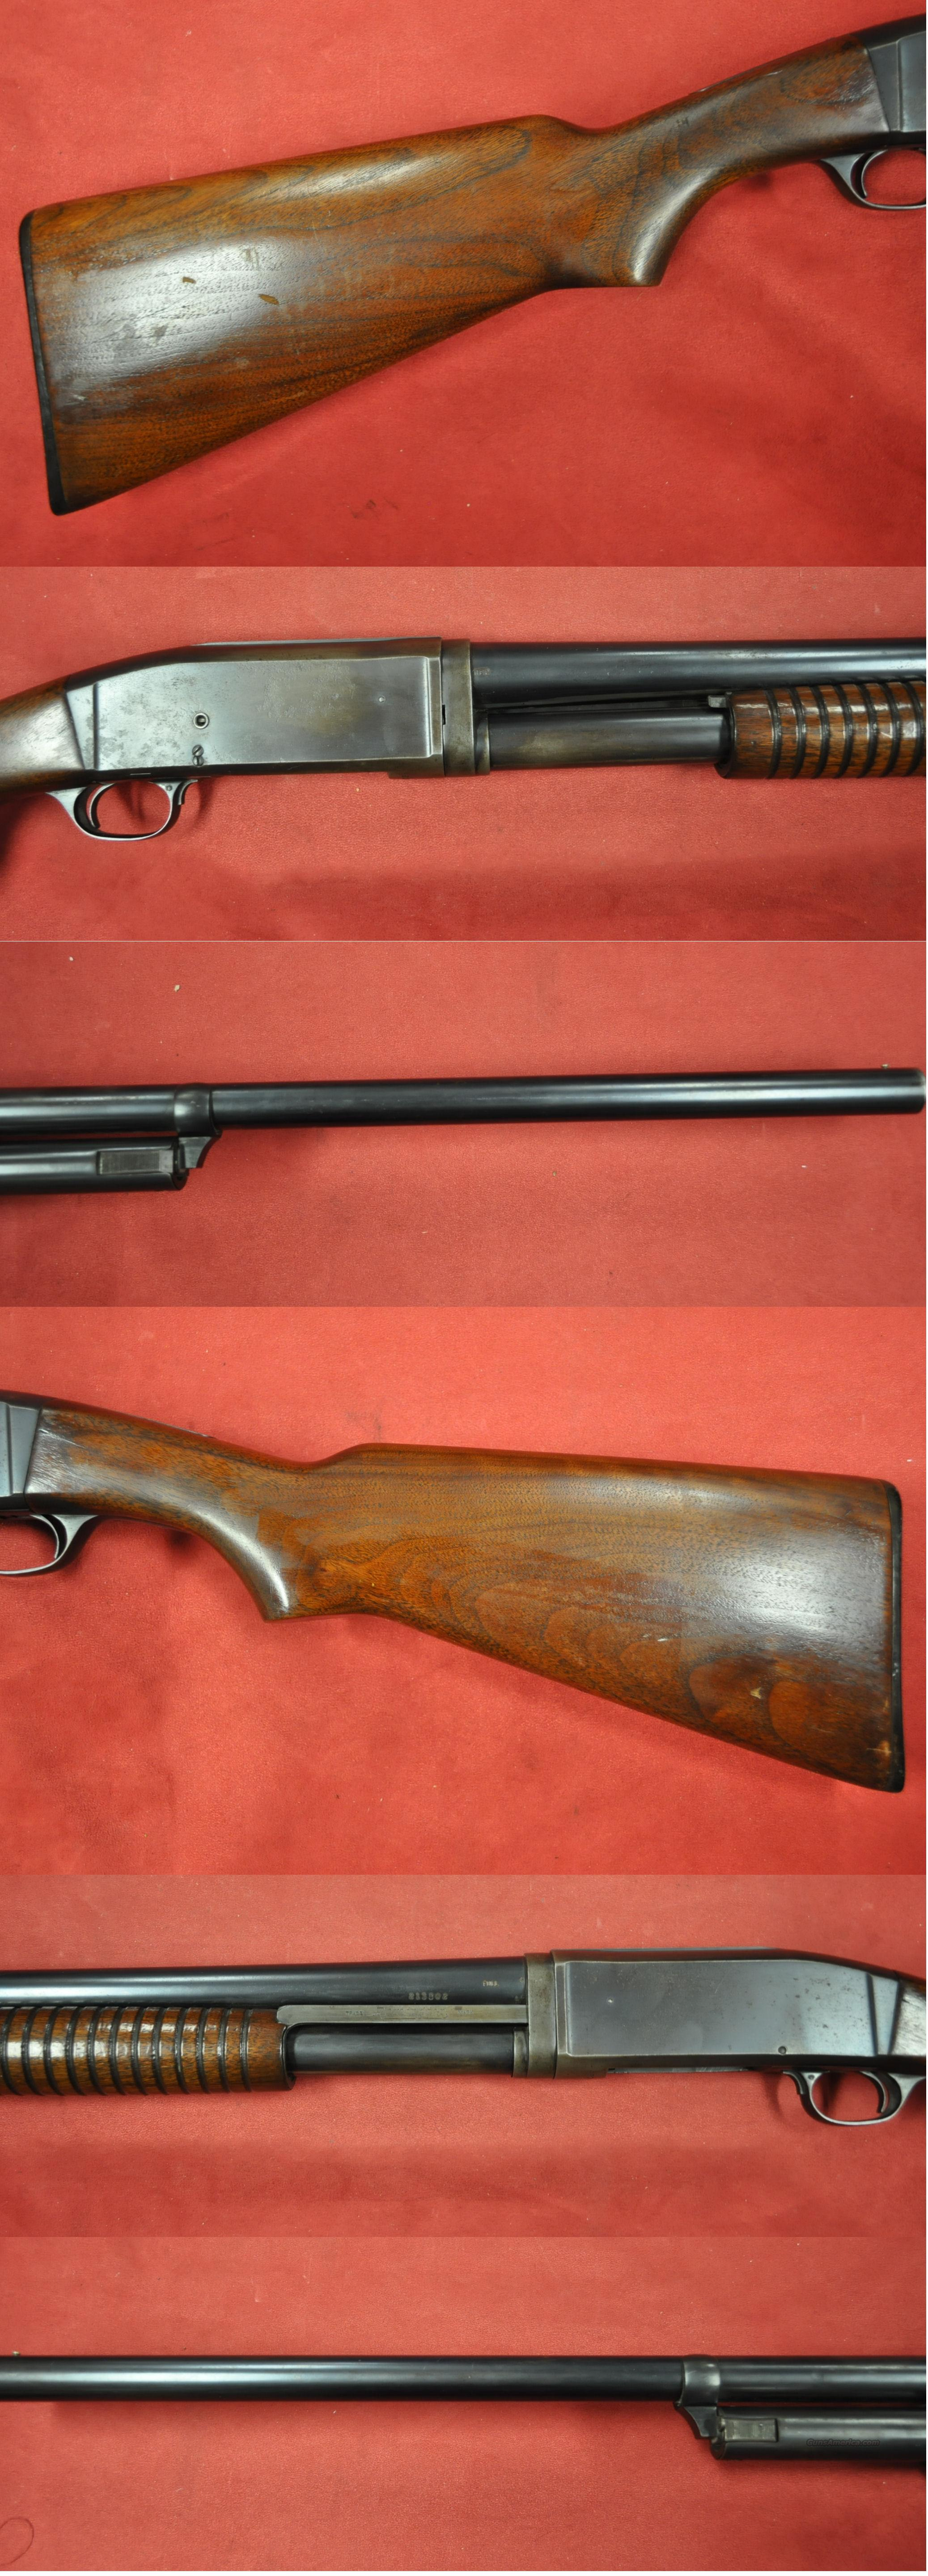 Rmington Model 10  12ga.  *MUST CALL*  Guns > Shotguns > Remington Shotguns  > Pump > Hunting